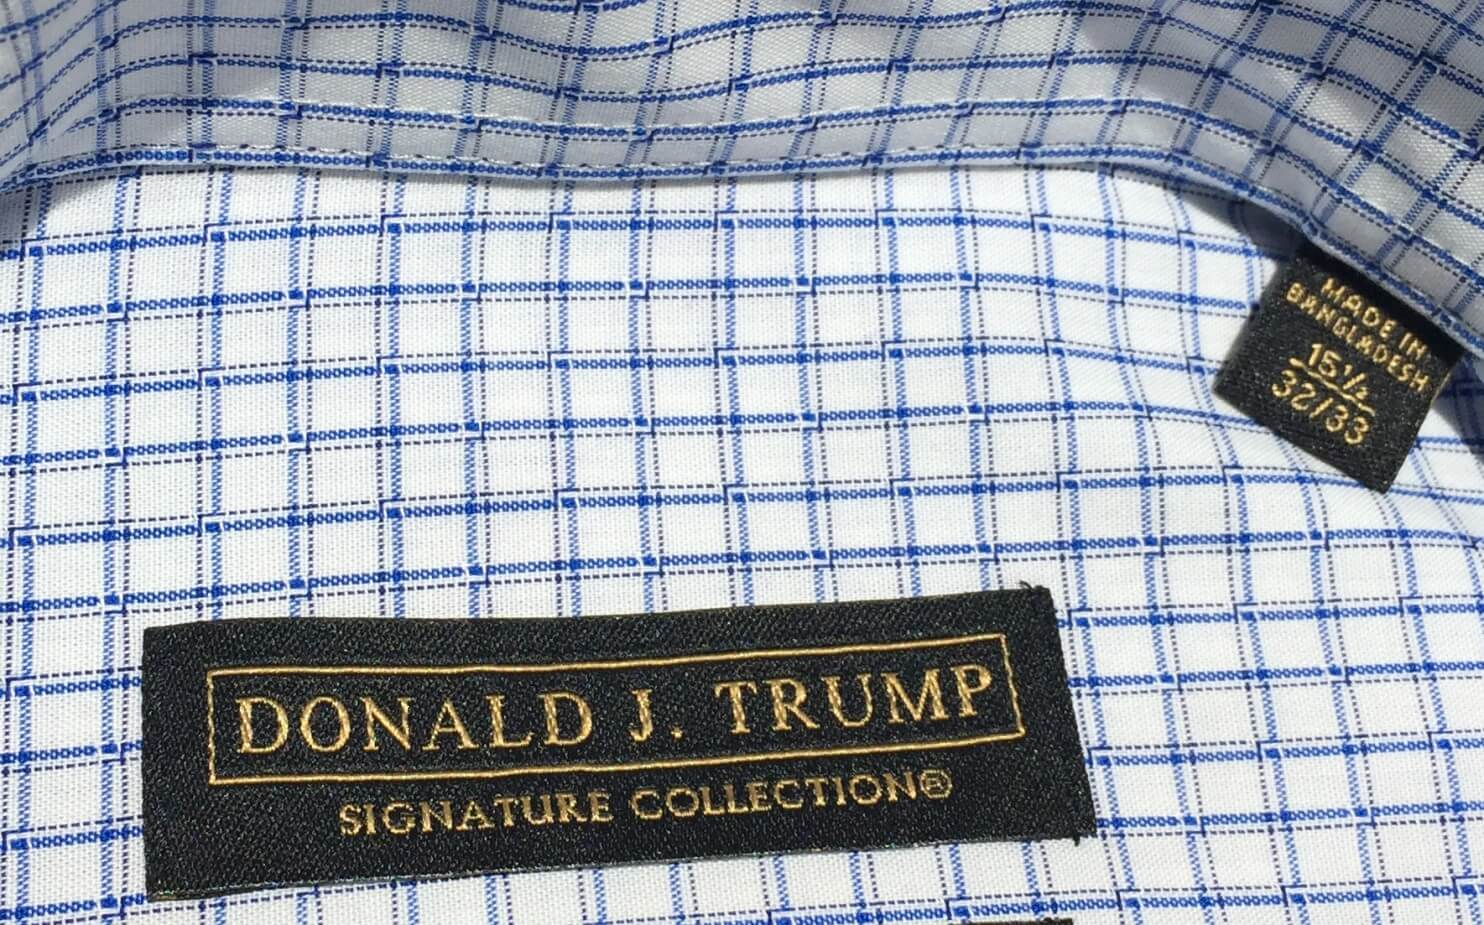 'Made in Bangladesh' tag inside Donald Trump's 'Signature Collection' shirt - Washington Post